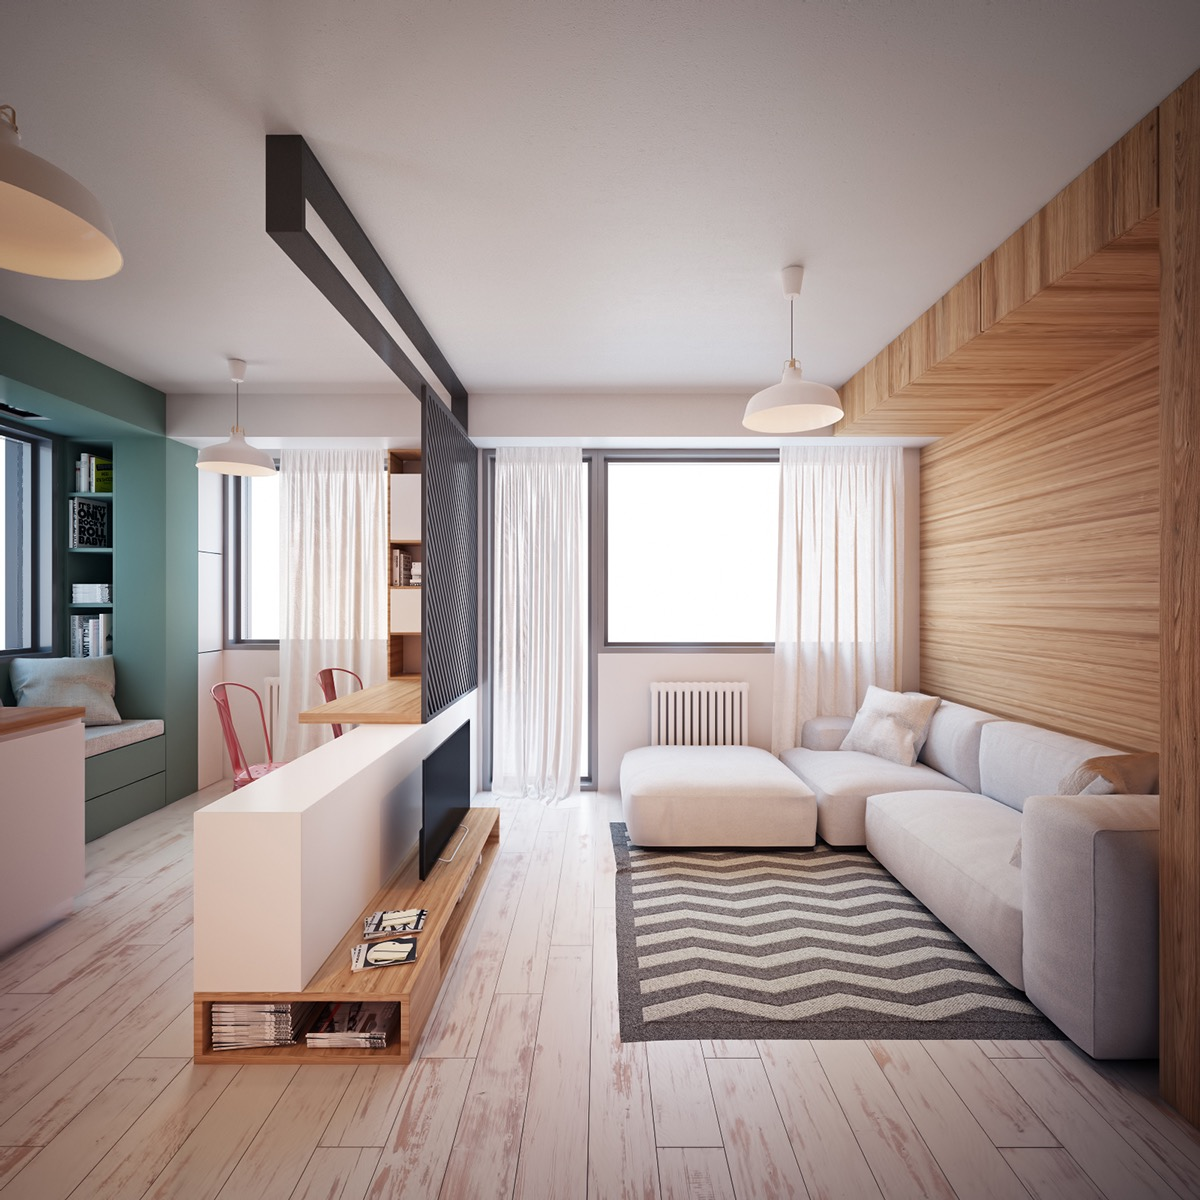 Ultra tiny home design 4 interiors under 40 square meters for Living room 10 square meters